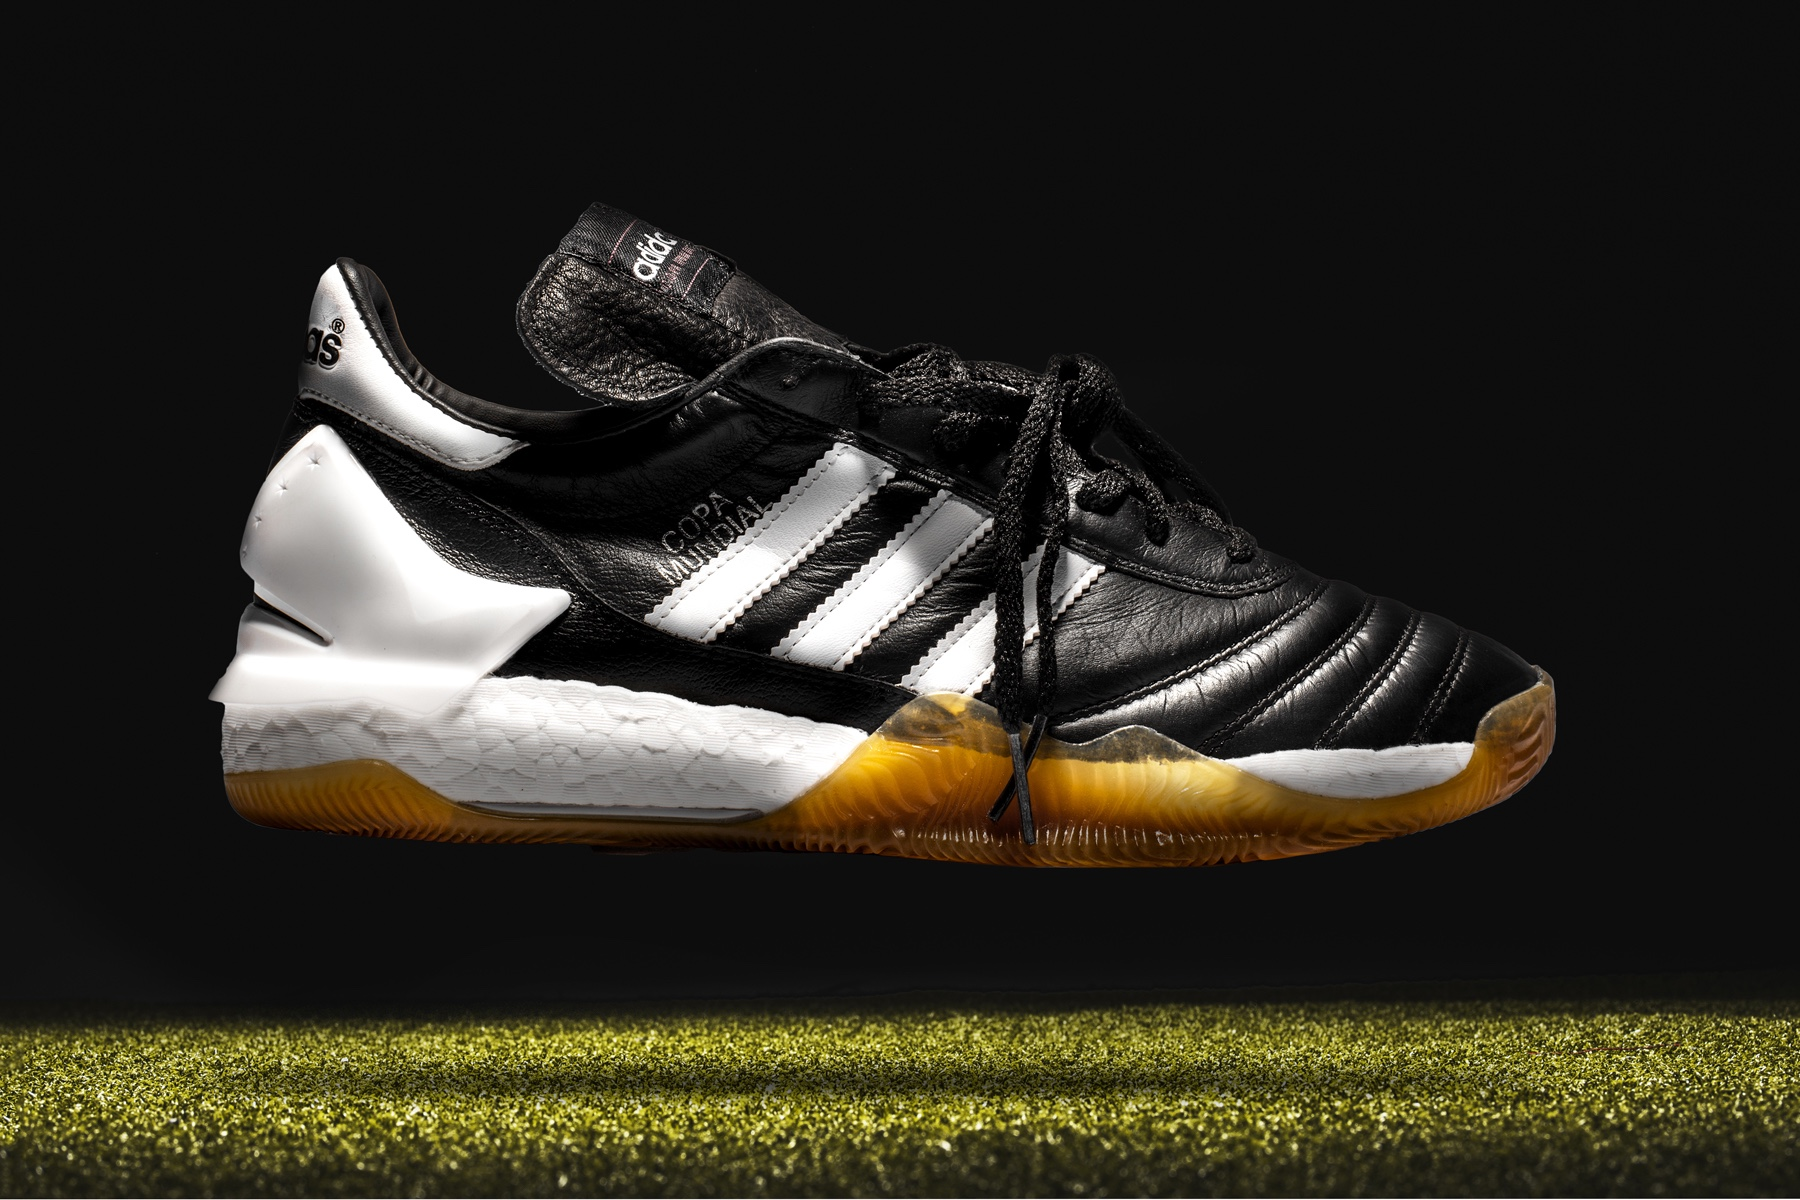 http---hypebeast.com-image-2017-04-adidas-copa-mundial-cleat-shoe-surgeon-1